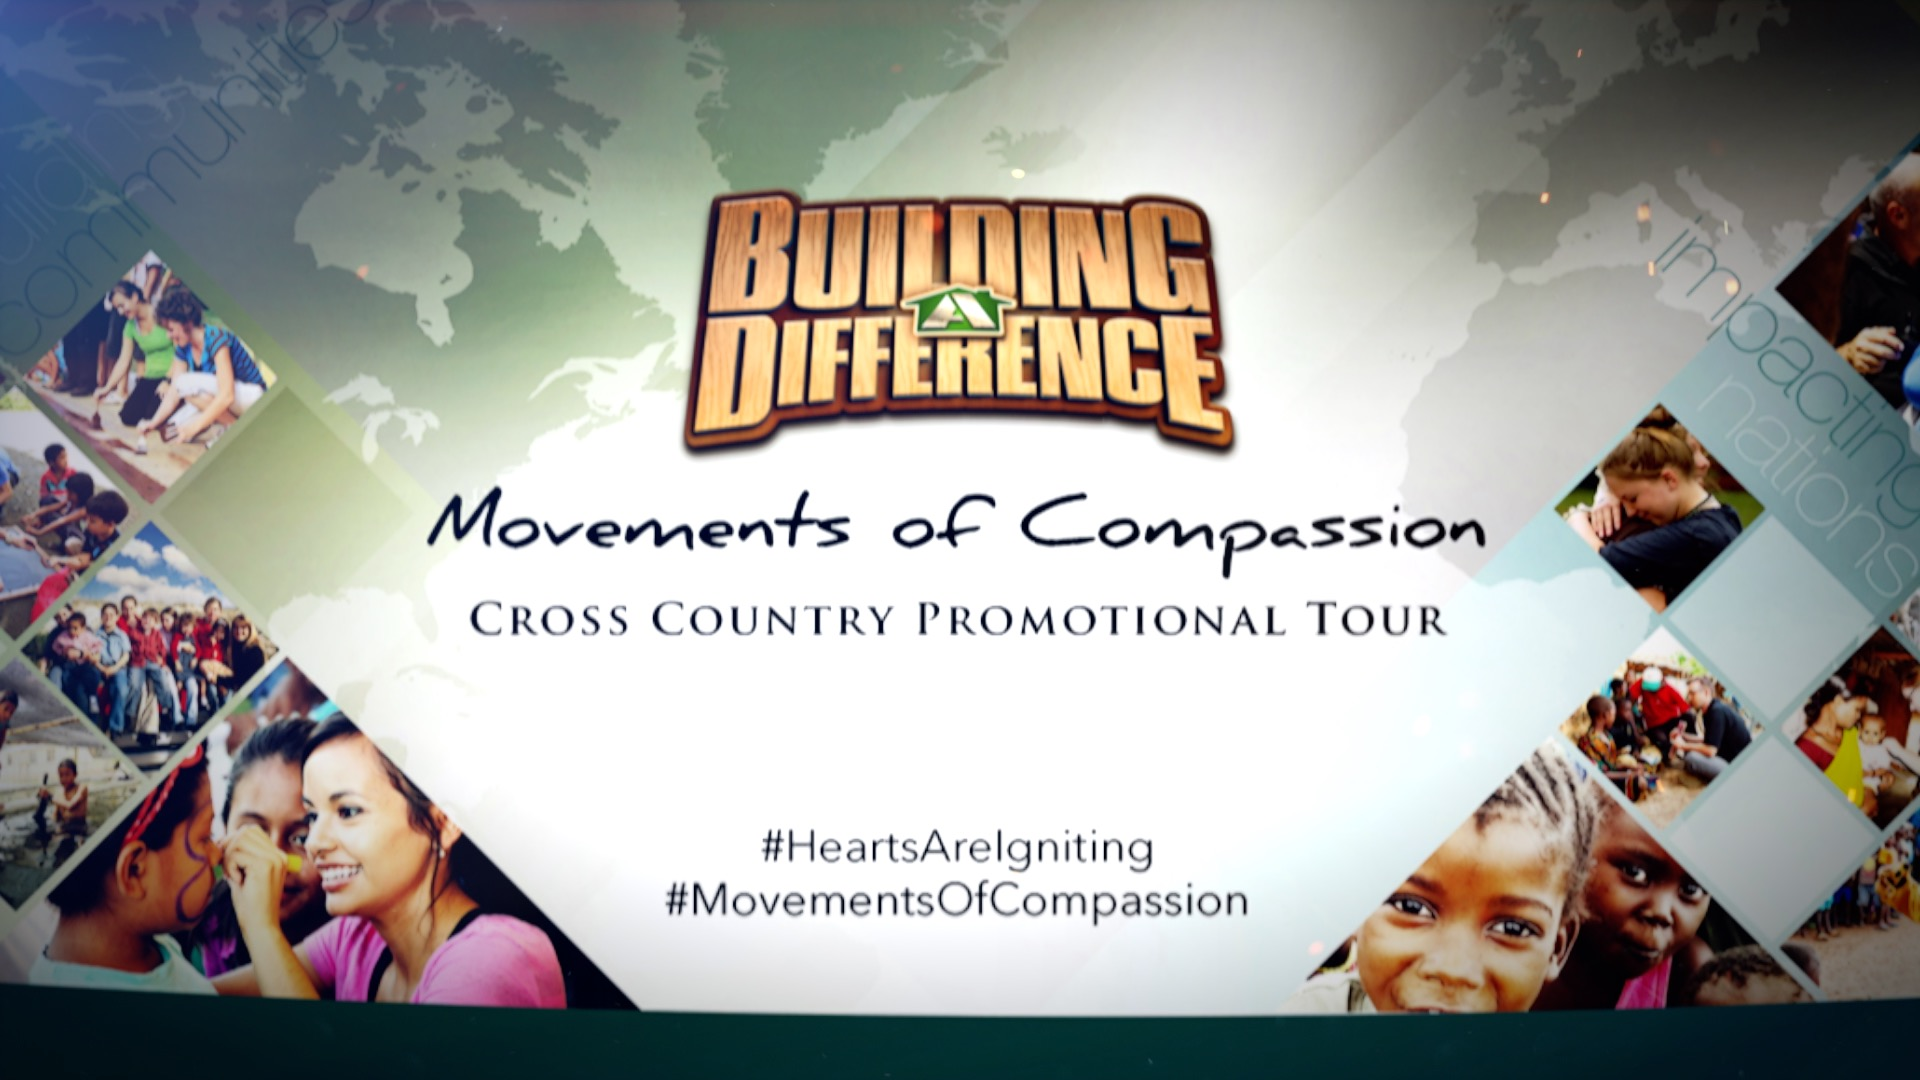 WATCH NEW Movements of Compassion Tour VIDEO UPDATE!!!